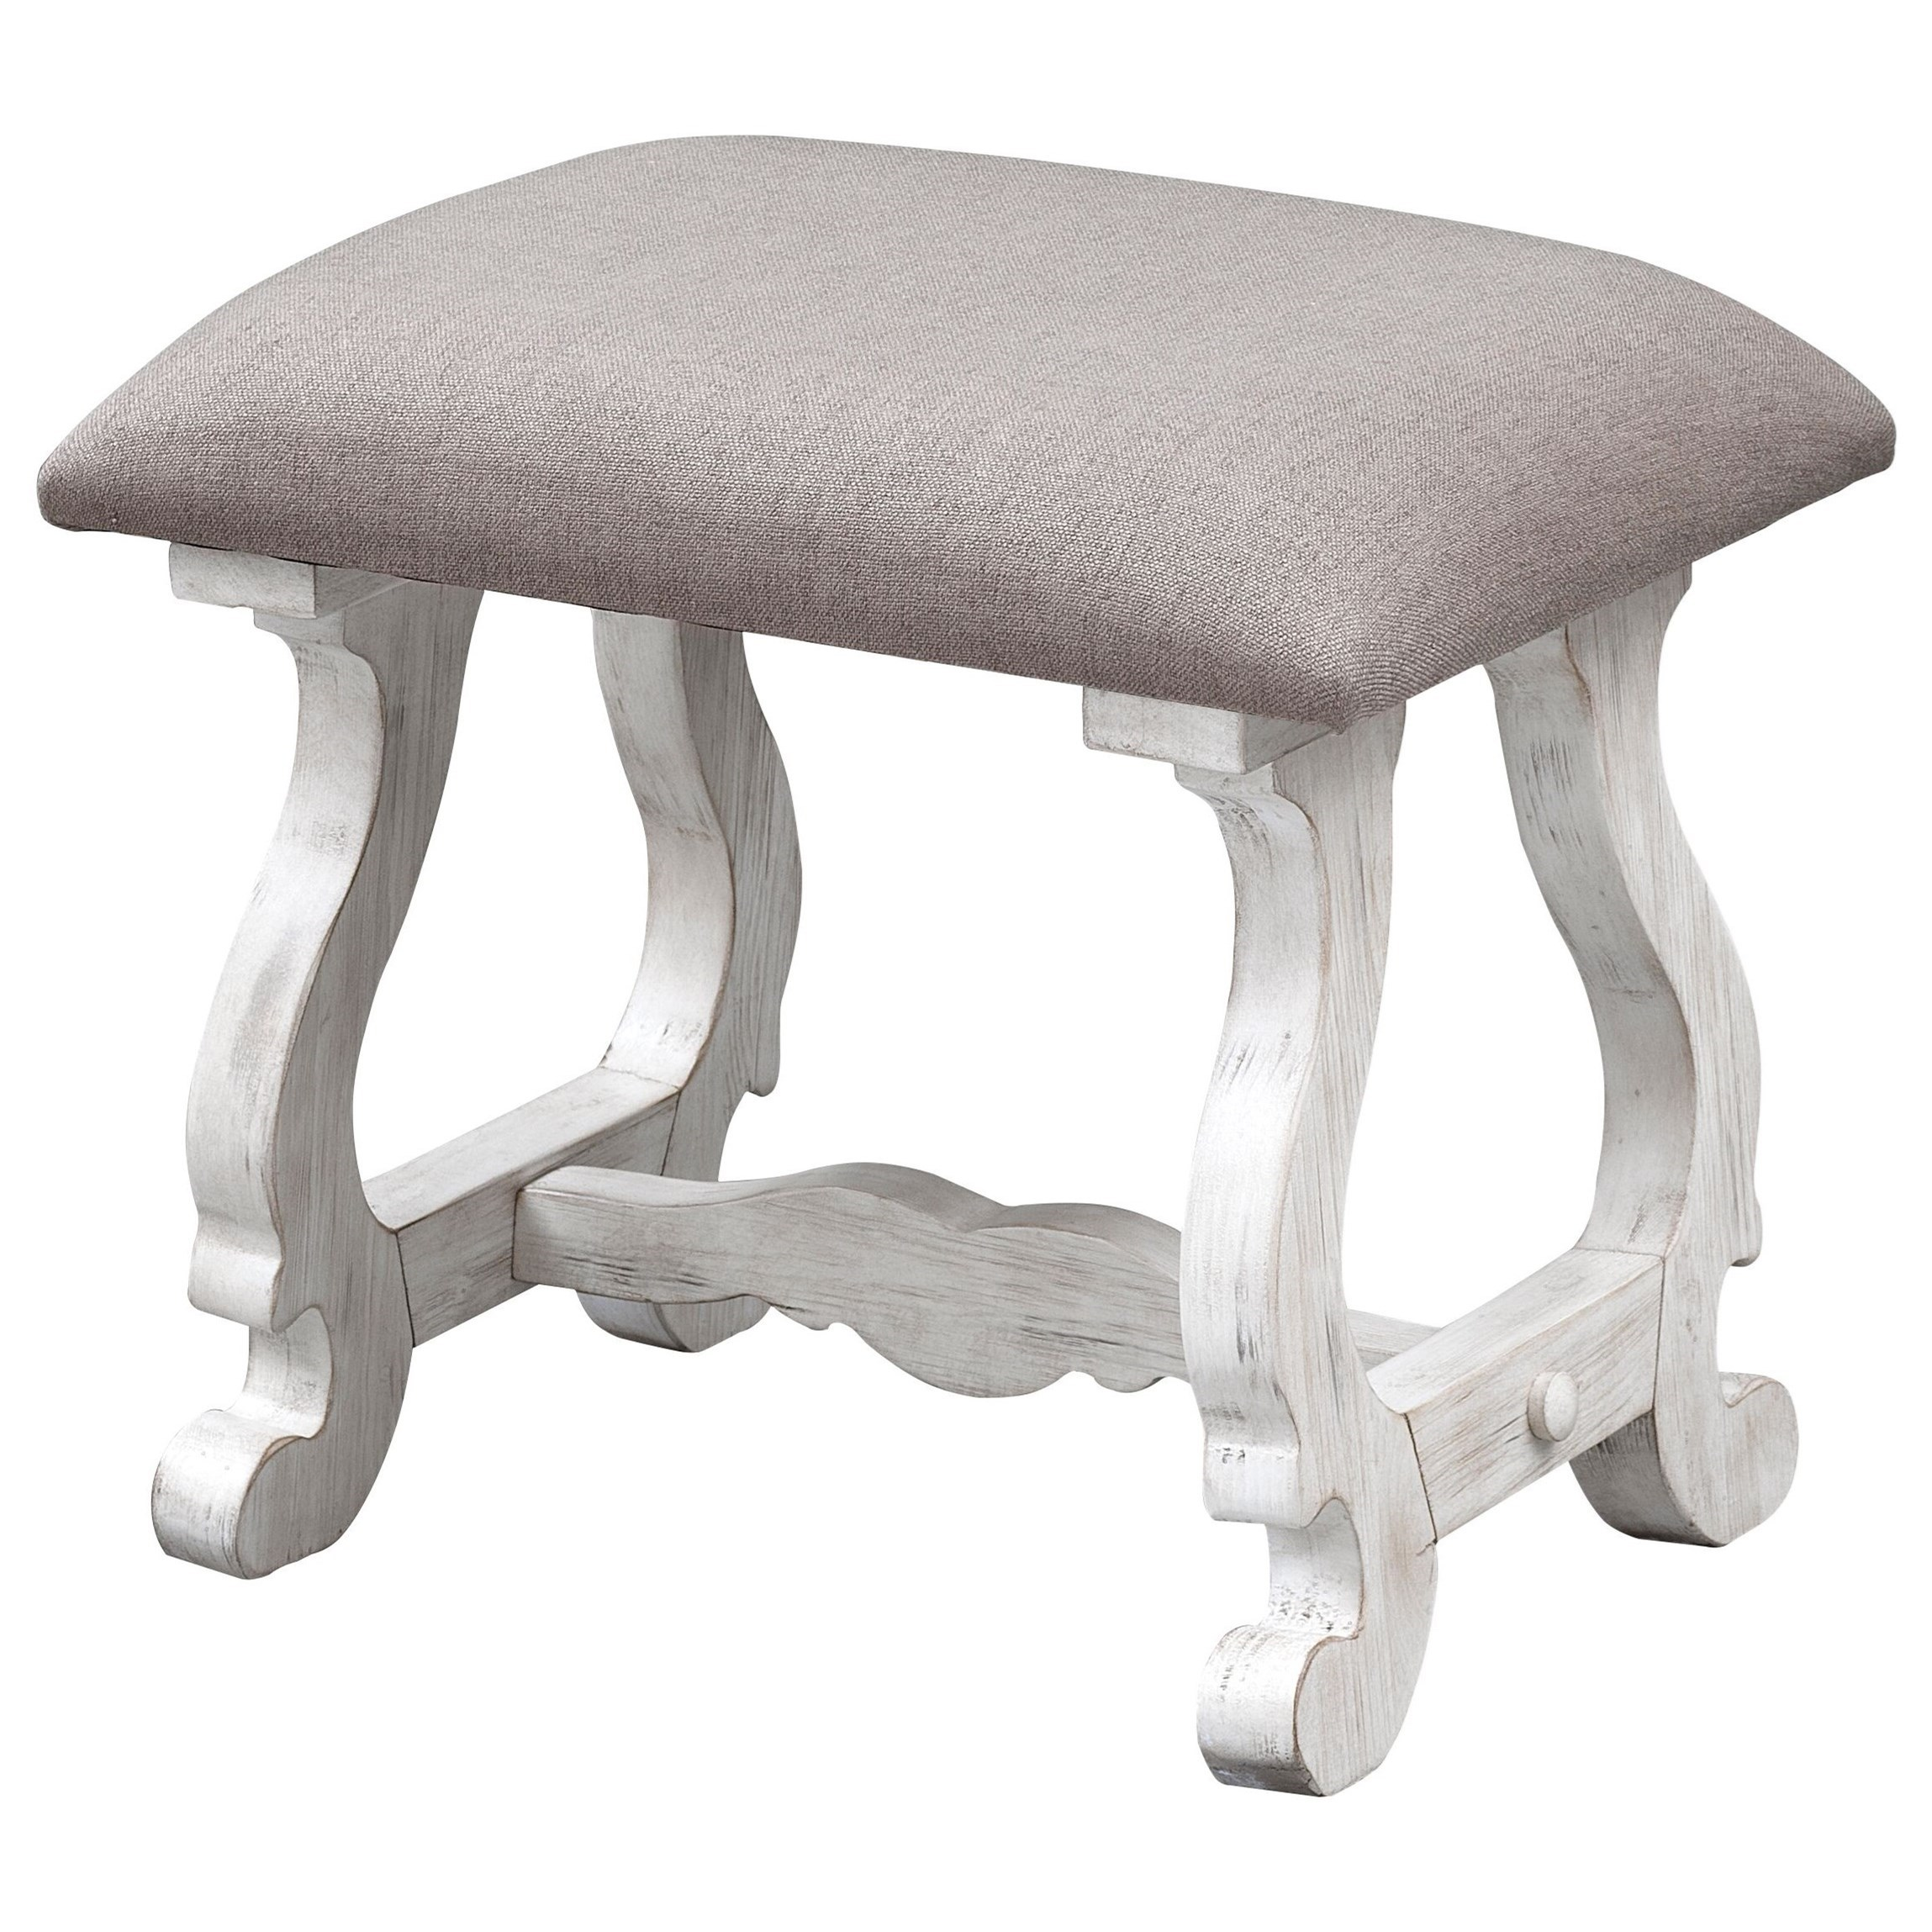 Coast to Coast Accents Accent Stool by Coast to Coast Imports at Baer's Furniture